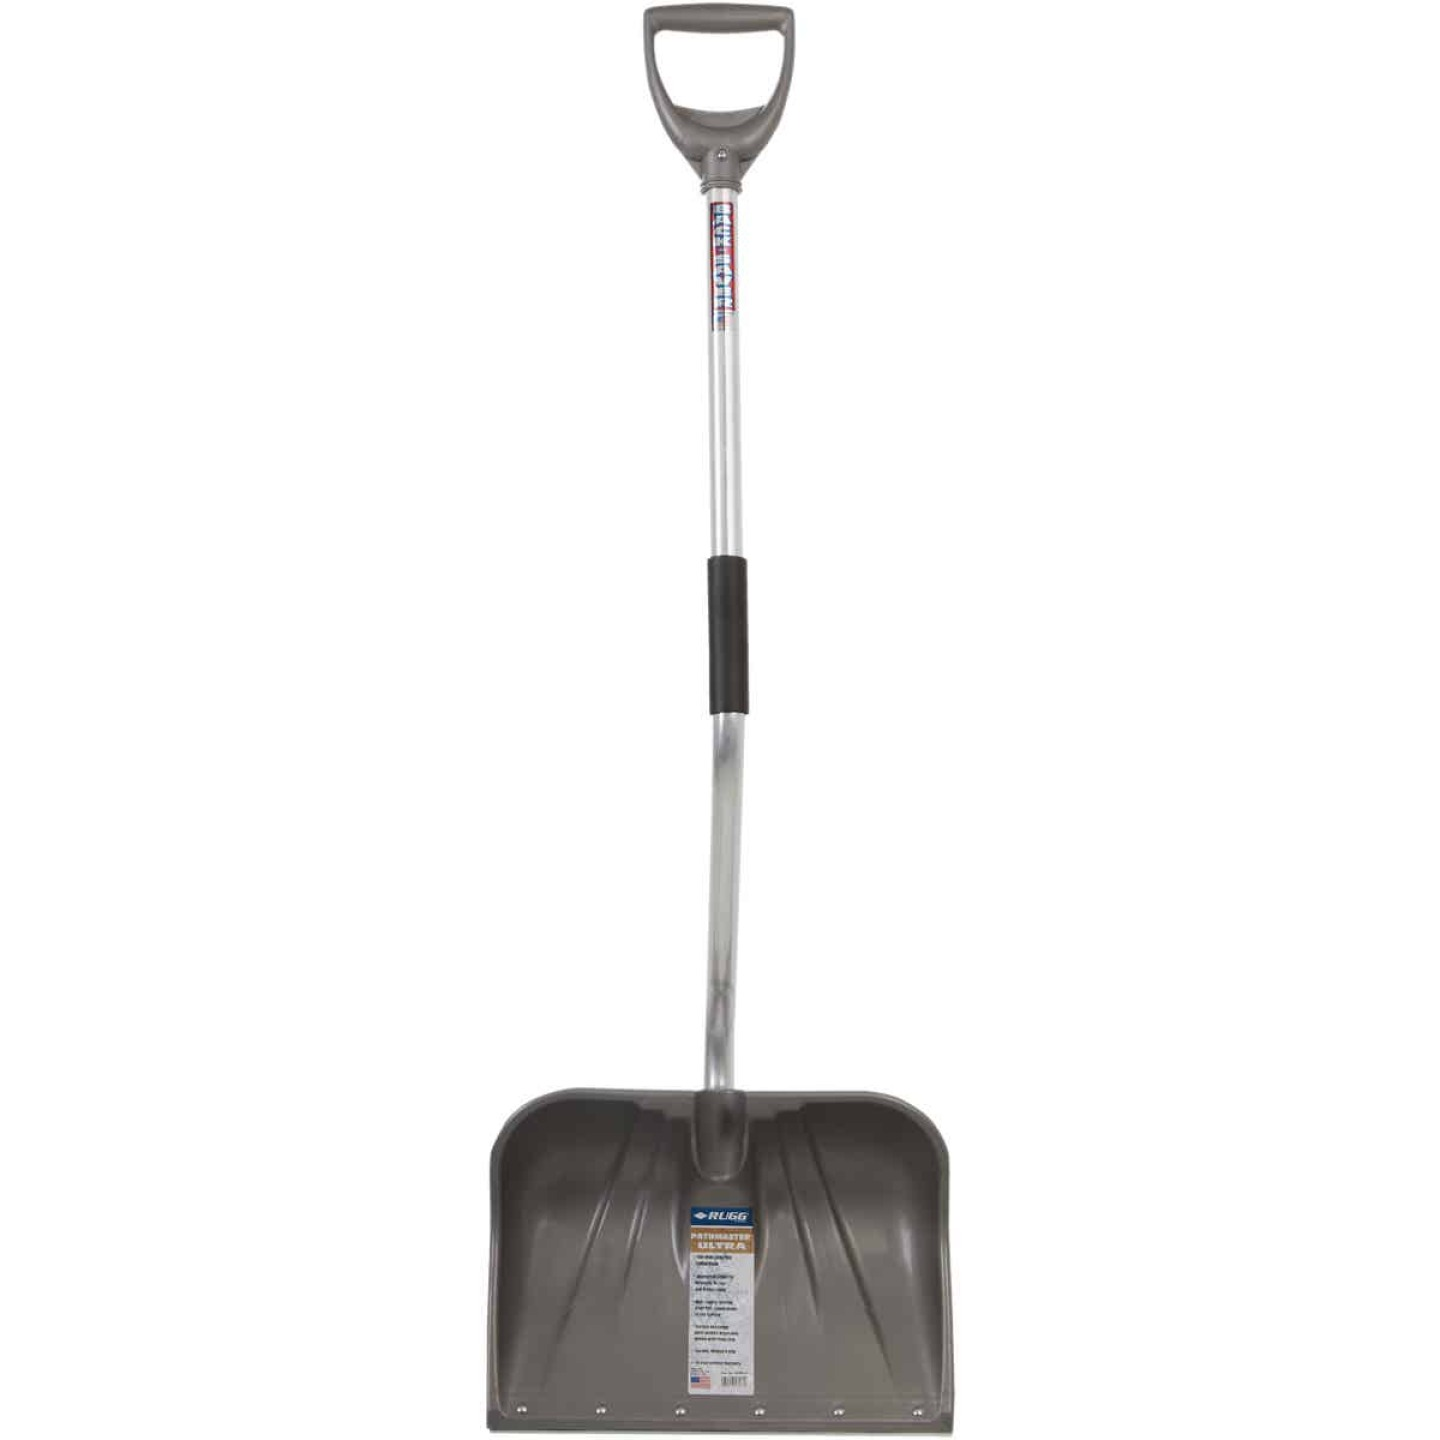 Rugg Back-Saver Lite-Wate 18 In. Poly Snow Shovel with 42.5 In. Aluminum Handle Image 2